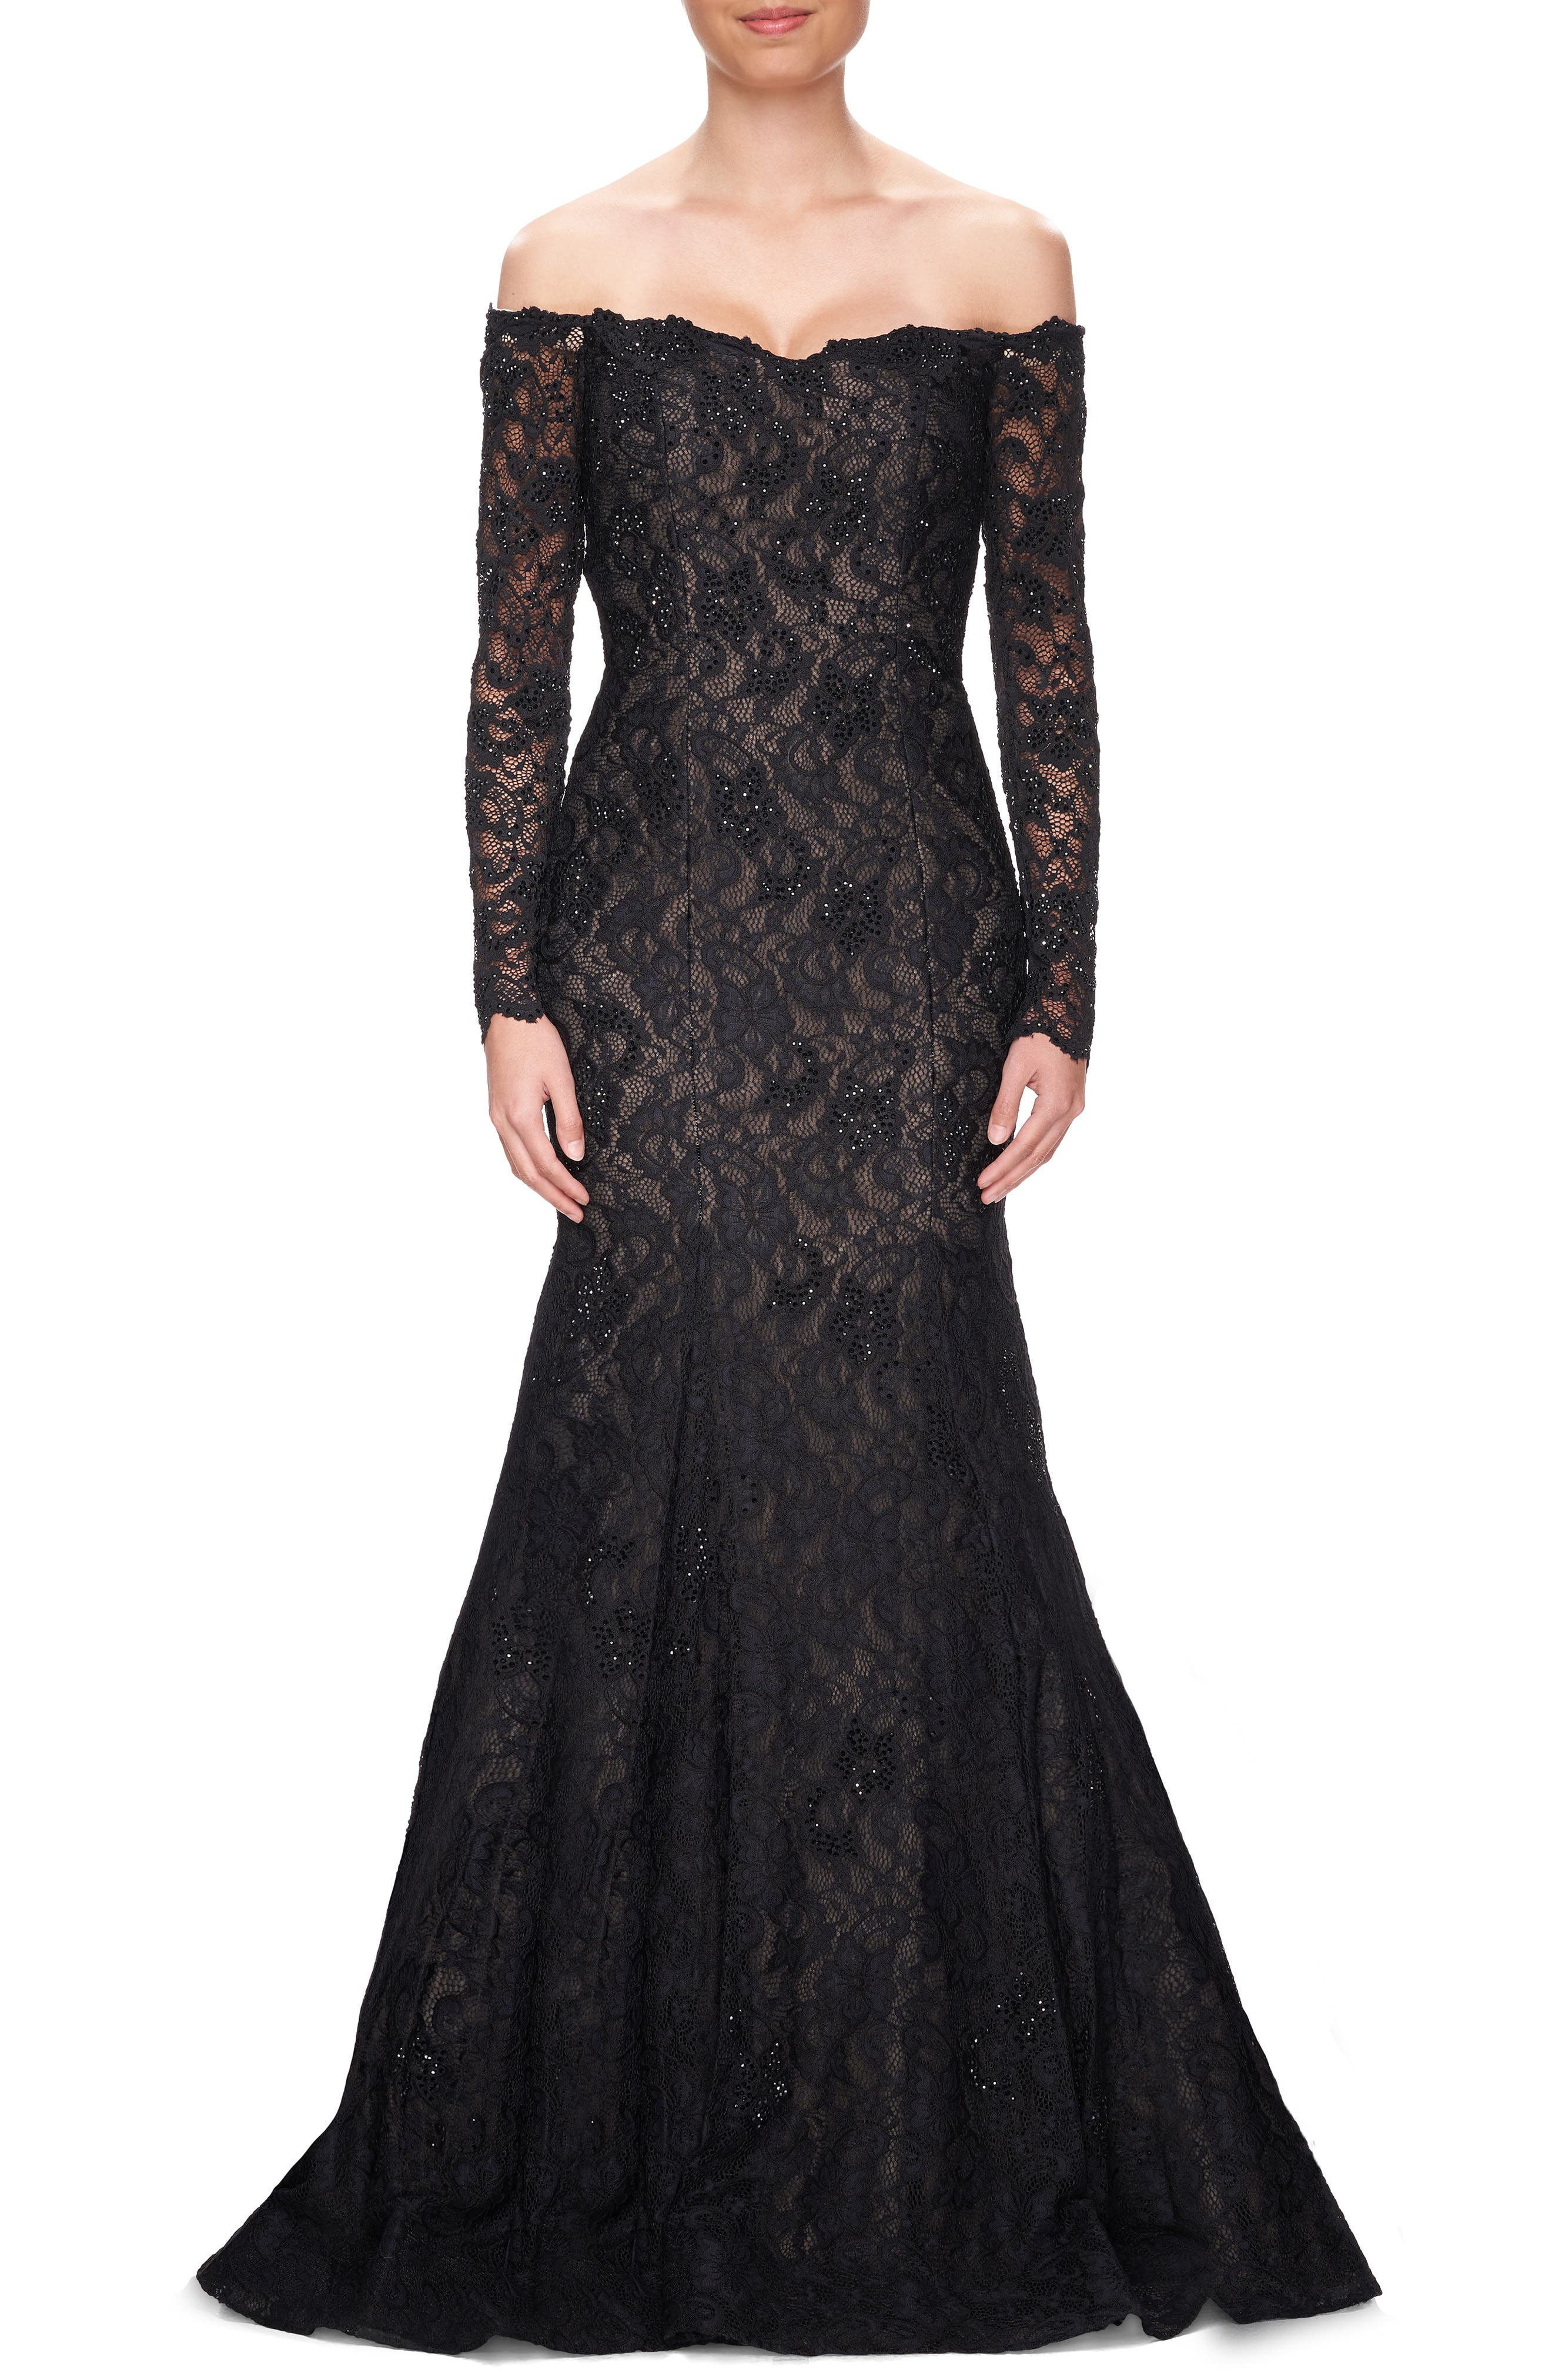 1950s Formal Dresses & Evening Gowns to Buy Womens La Femme Off The Shoulder Long Sleeve Lace Gown $373.50 AT vintagedancer.com